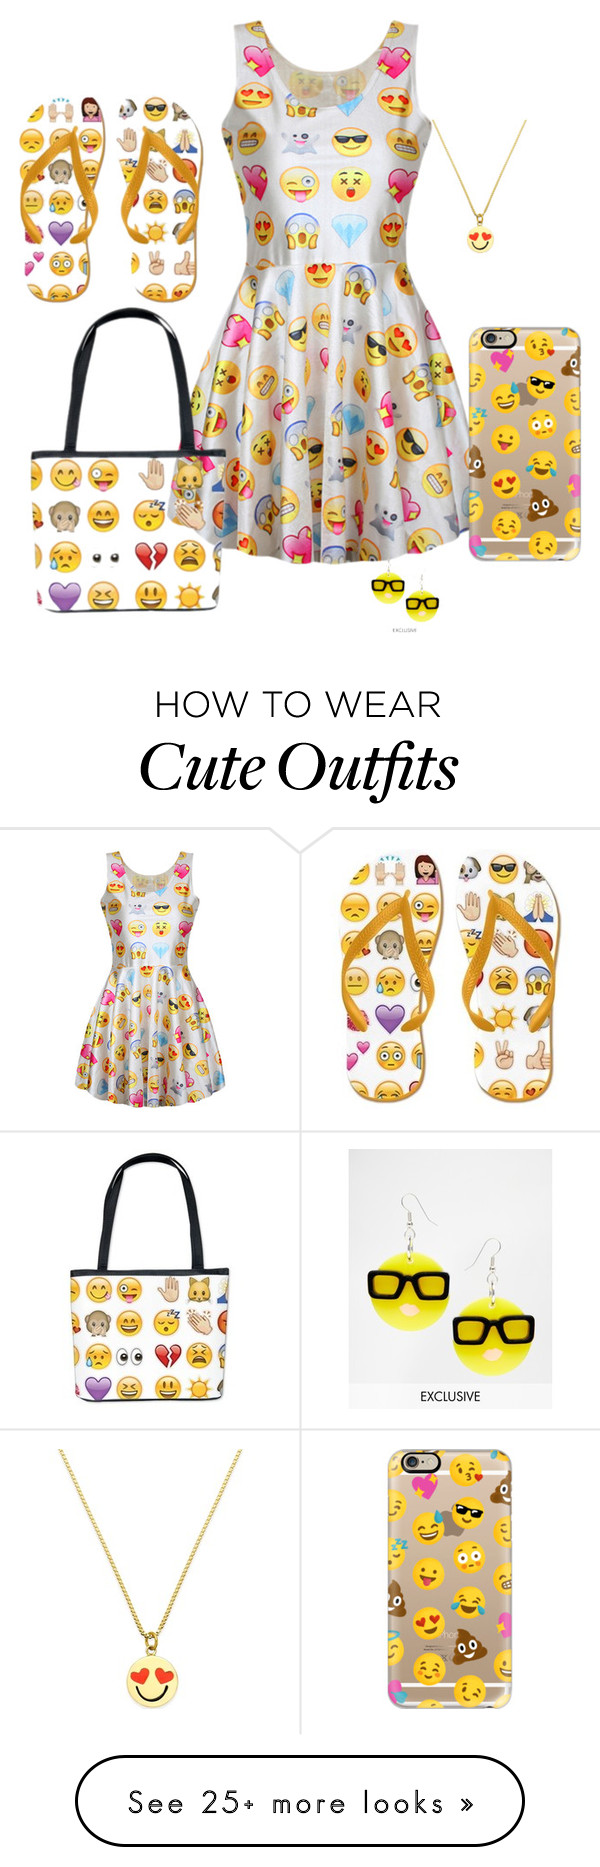 Emoji Outfit 2 By Beyzaalp On Polyvore Featuring Casetify Kate Petite Cupcakes Demmy Pants Spade And Tatty Devine